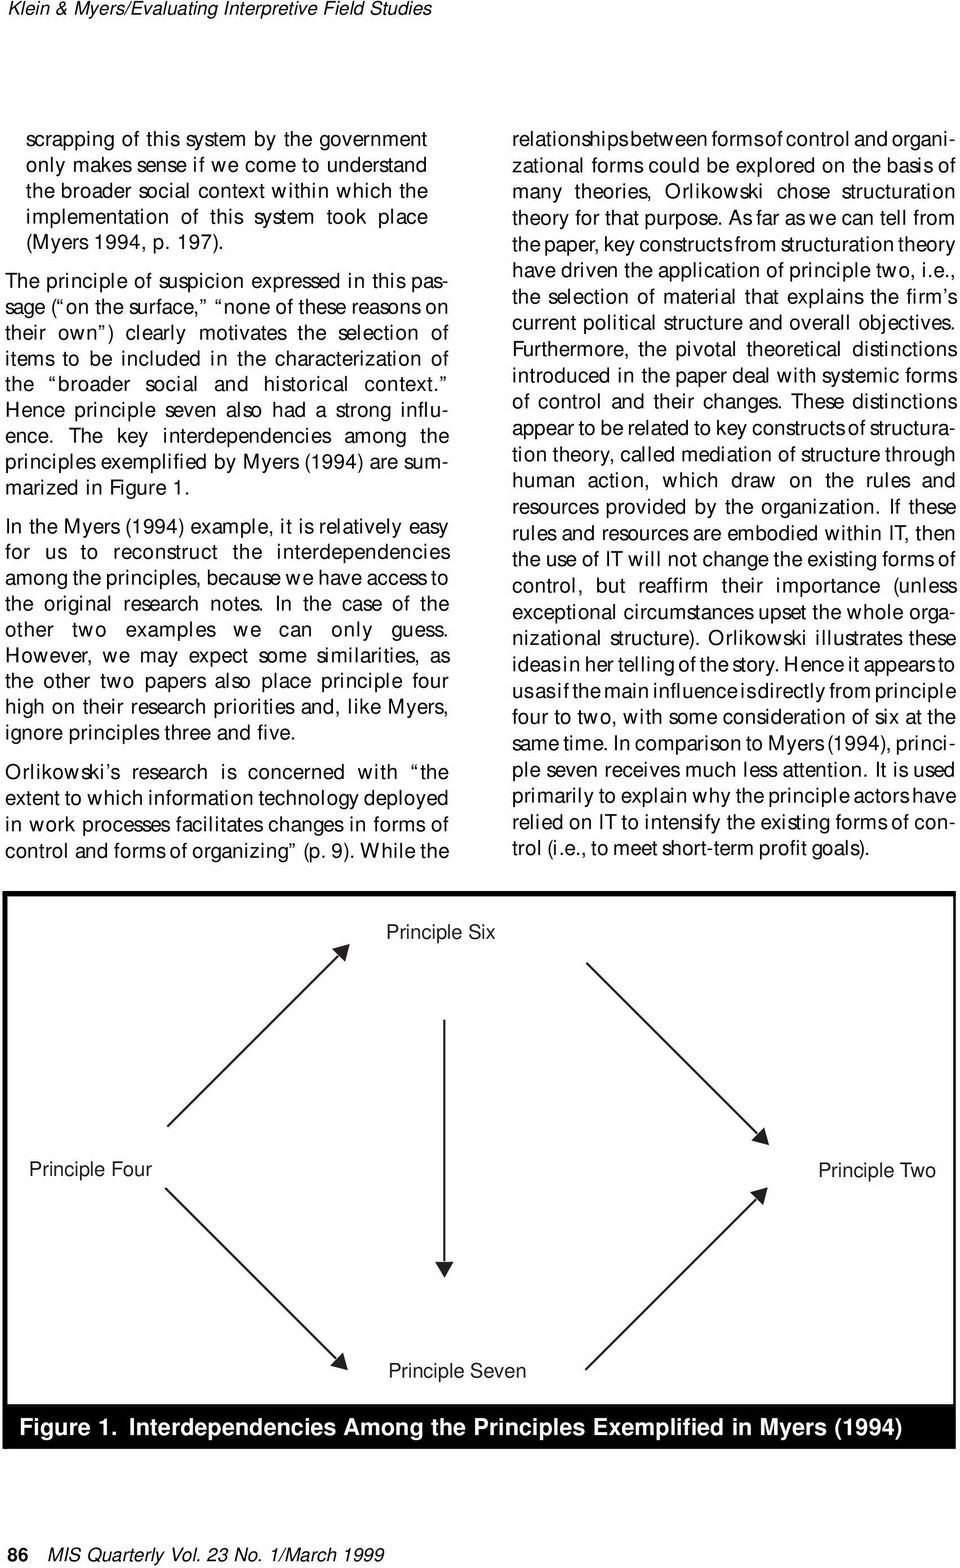 broader social and historical context. Hence principle seven also had a strong influence. The key interdependencies among the principles exemplified by Myers (1994) are summarized in Figure 1.